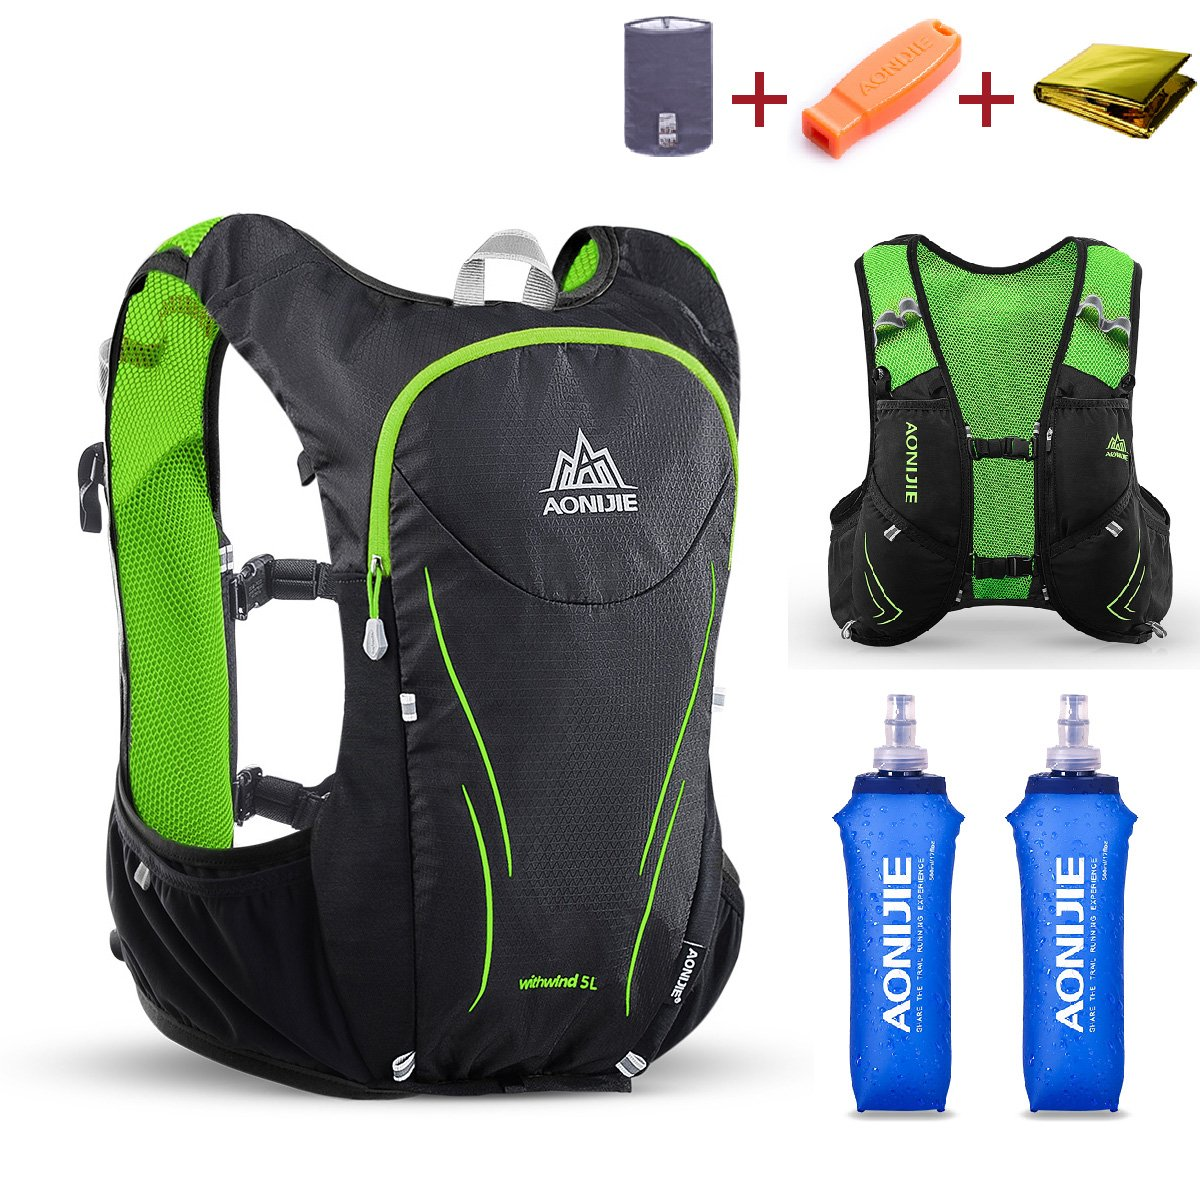 Amazon.com : JEELAD Running Hydration Backpack 5L Lightweight Deluxe Hydration Vest Pack for Marathon Running Race : Sports & Outdoors